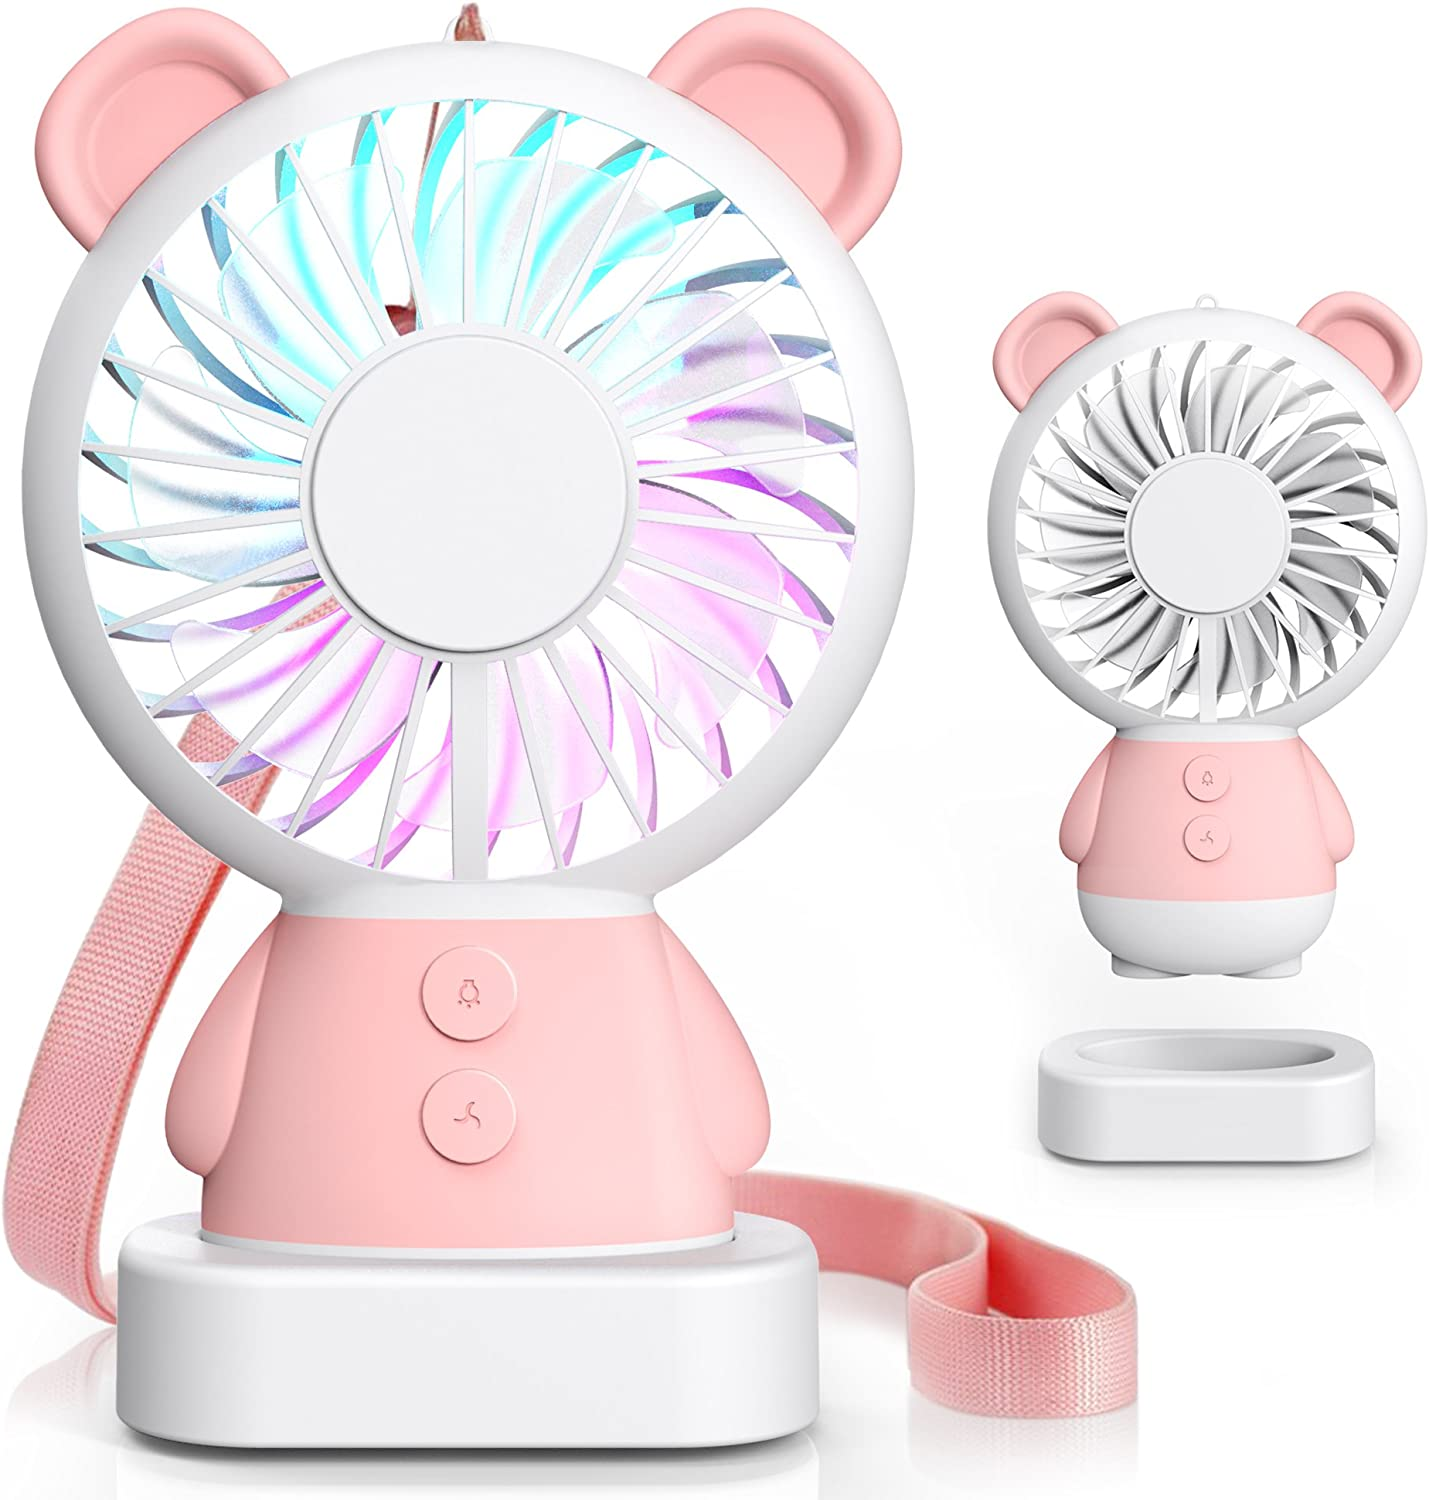 brown Tintec Adorable /& Cute USB Rechargeable Fan USB Fan 2 Adjustable Speeds Small Personal Necklace Fan with Multi-Color LED Light Perfect for Indoor or Outdoor Activities